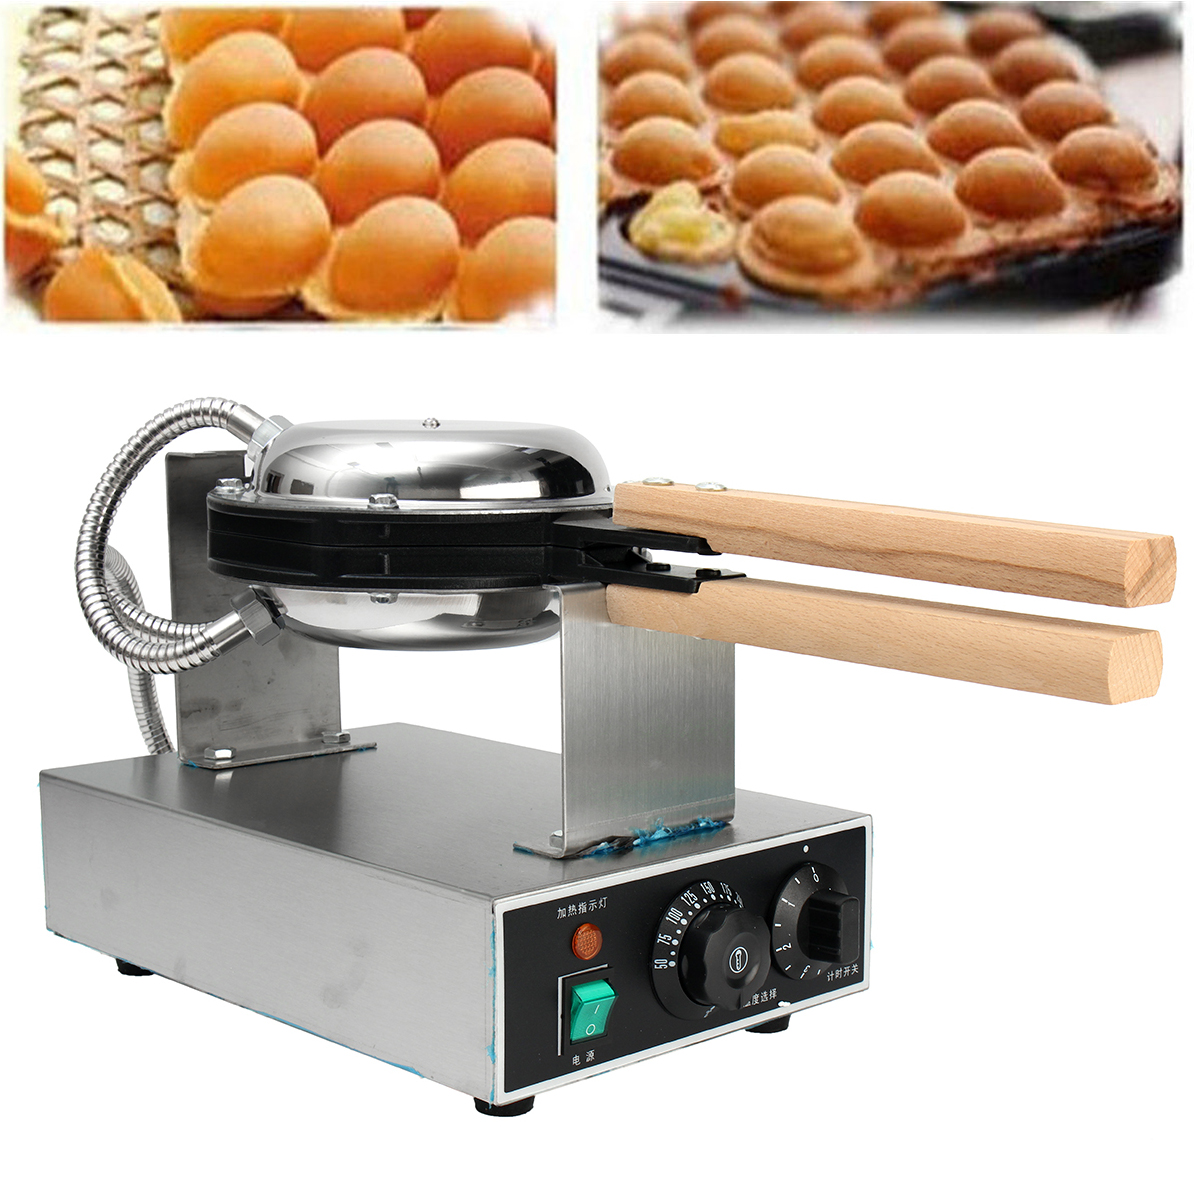 220V 1500W Stainless Steel Nonstick Electric Egg Cake Oven Waffle Maker Machine